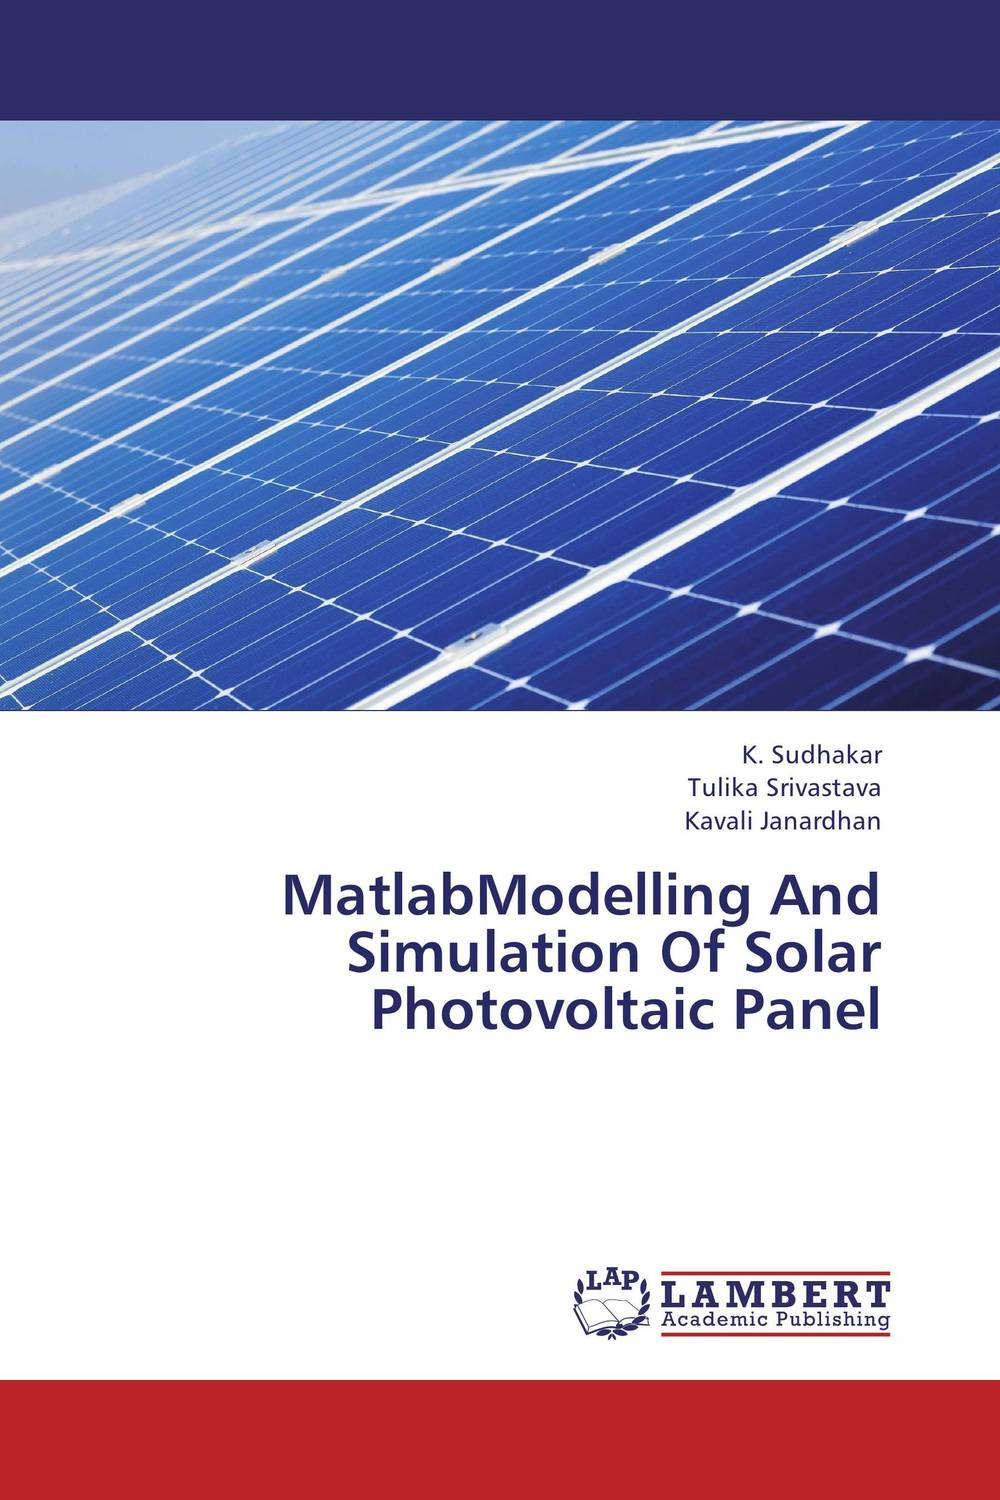 MatlabModelling And Simulation Of Solar Photovoltaic Panel anton camarota sustainability management in the solar photovoltaic industry